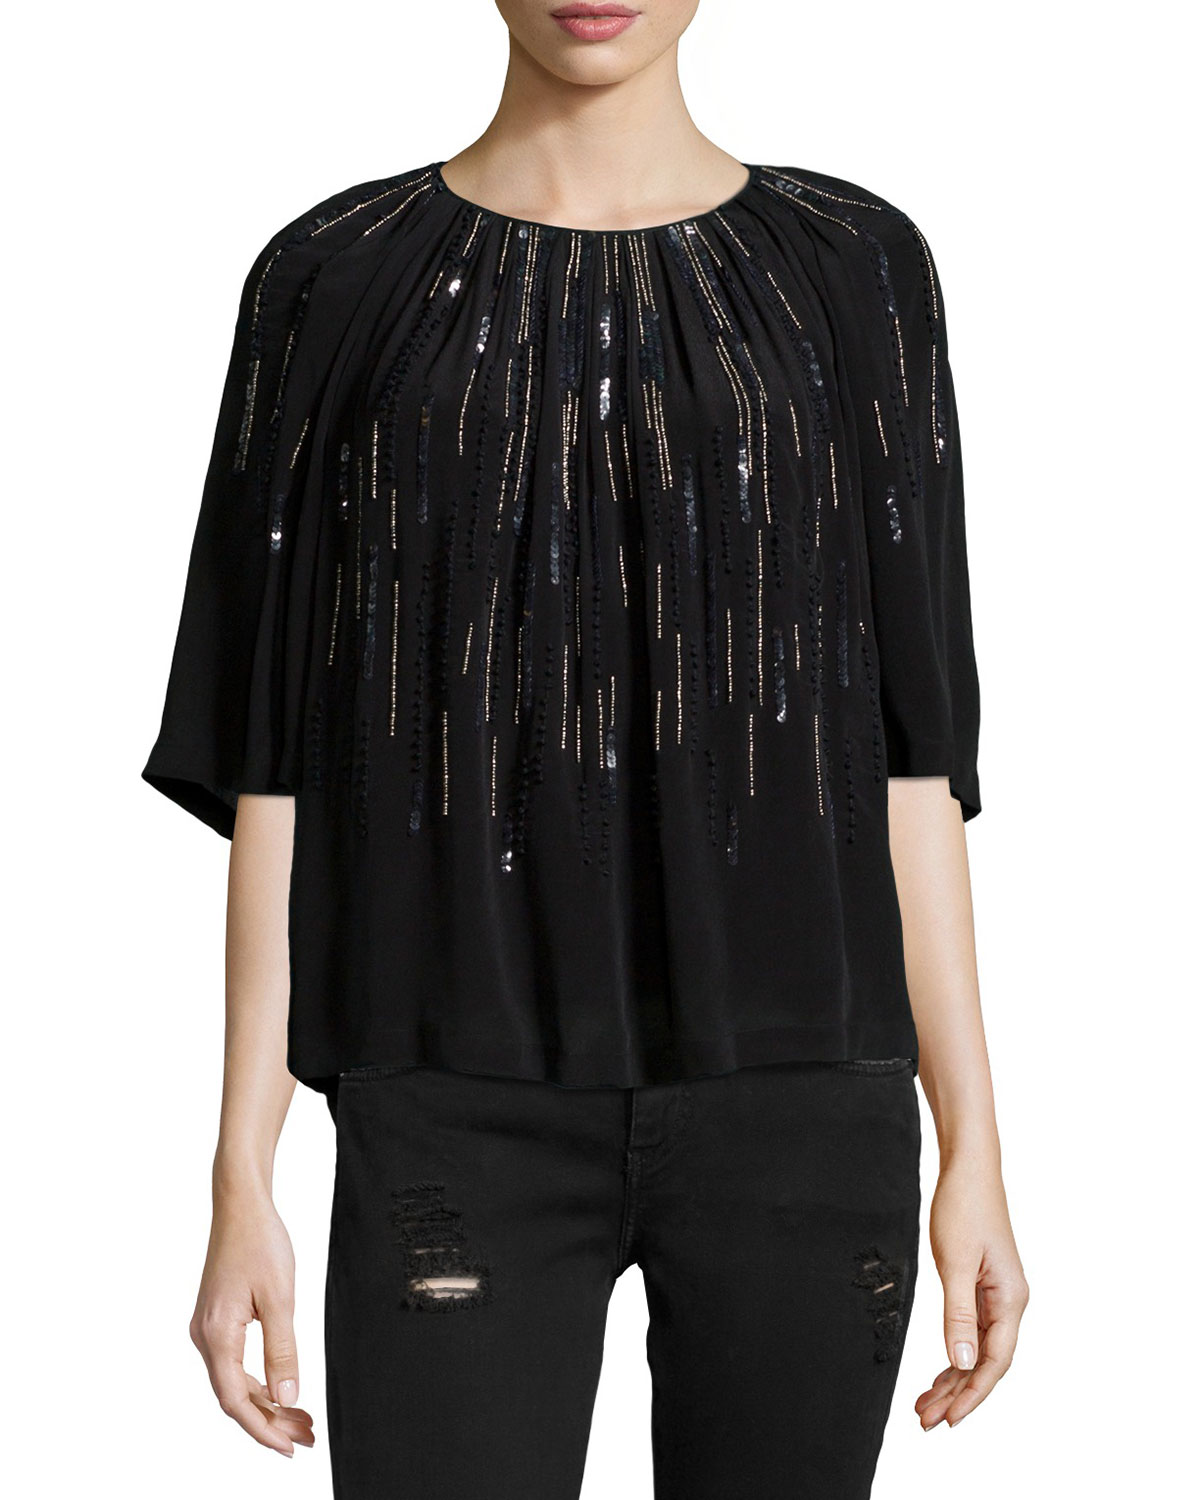 Barley Sequin-Embellished Top, Black